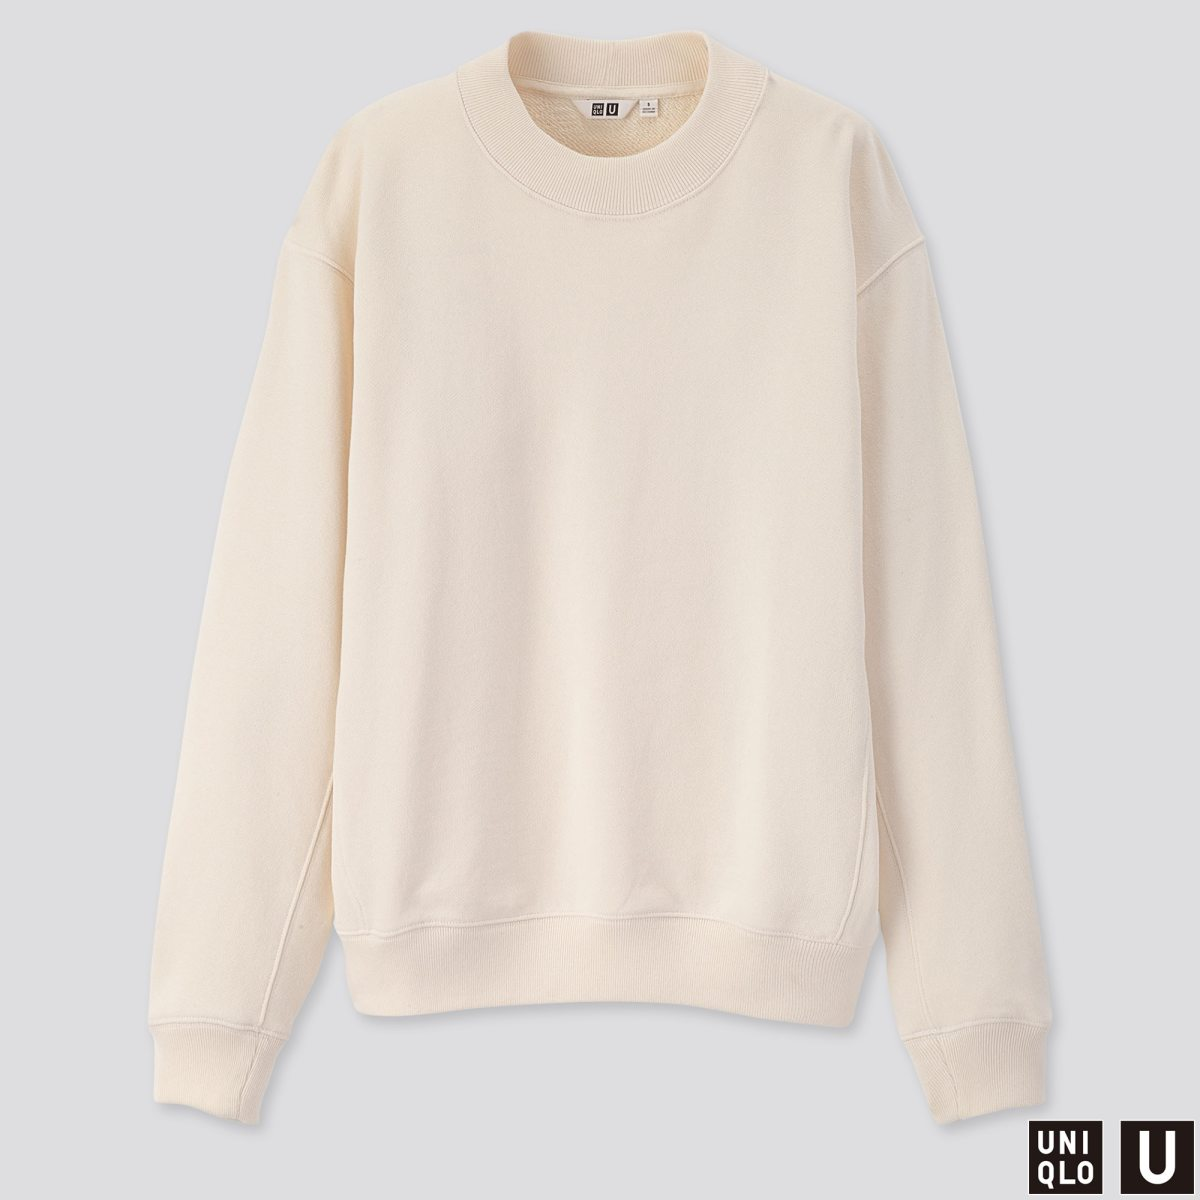 sale retailer official shop new release Dhani's New Uniqlo Sweatshirt Has the Ideal Weight and Shape ...